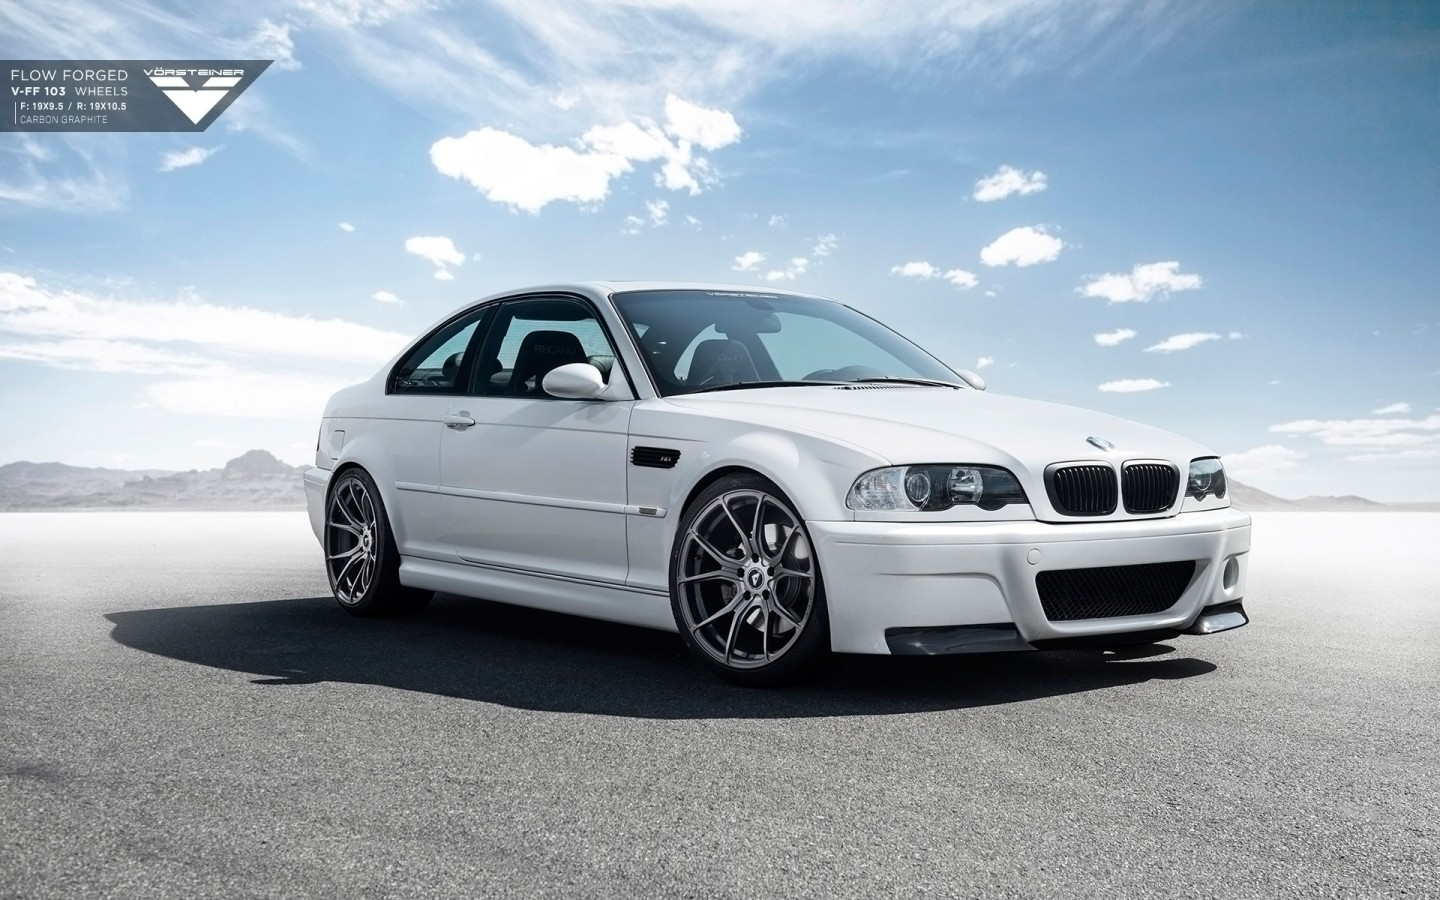 Vorsteiner Bmw E46 M3 Wallpaper Hd Car Wallpapers Id 5859